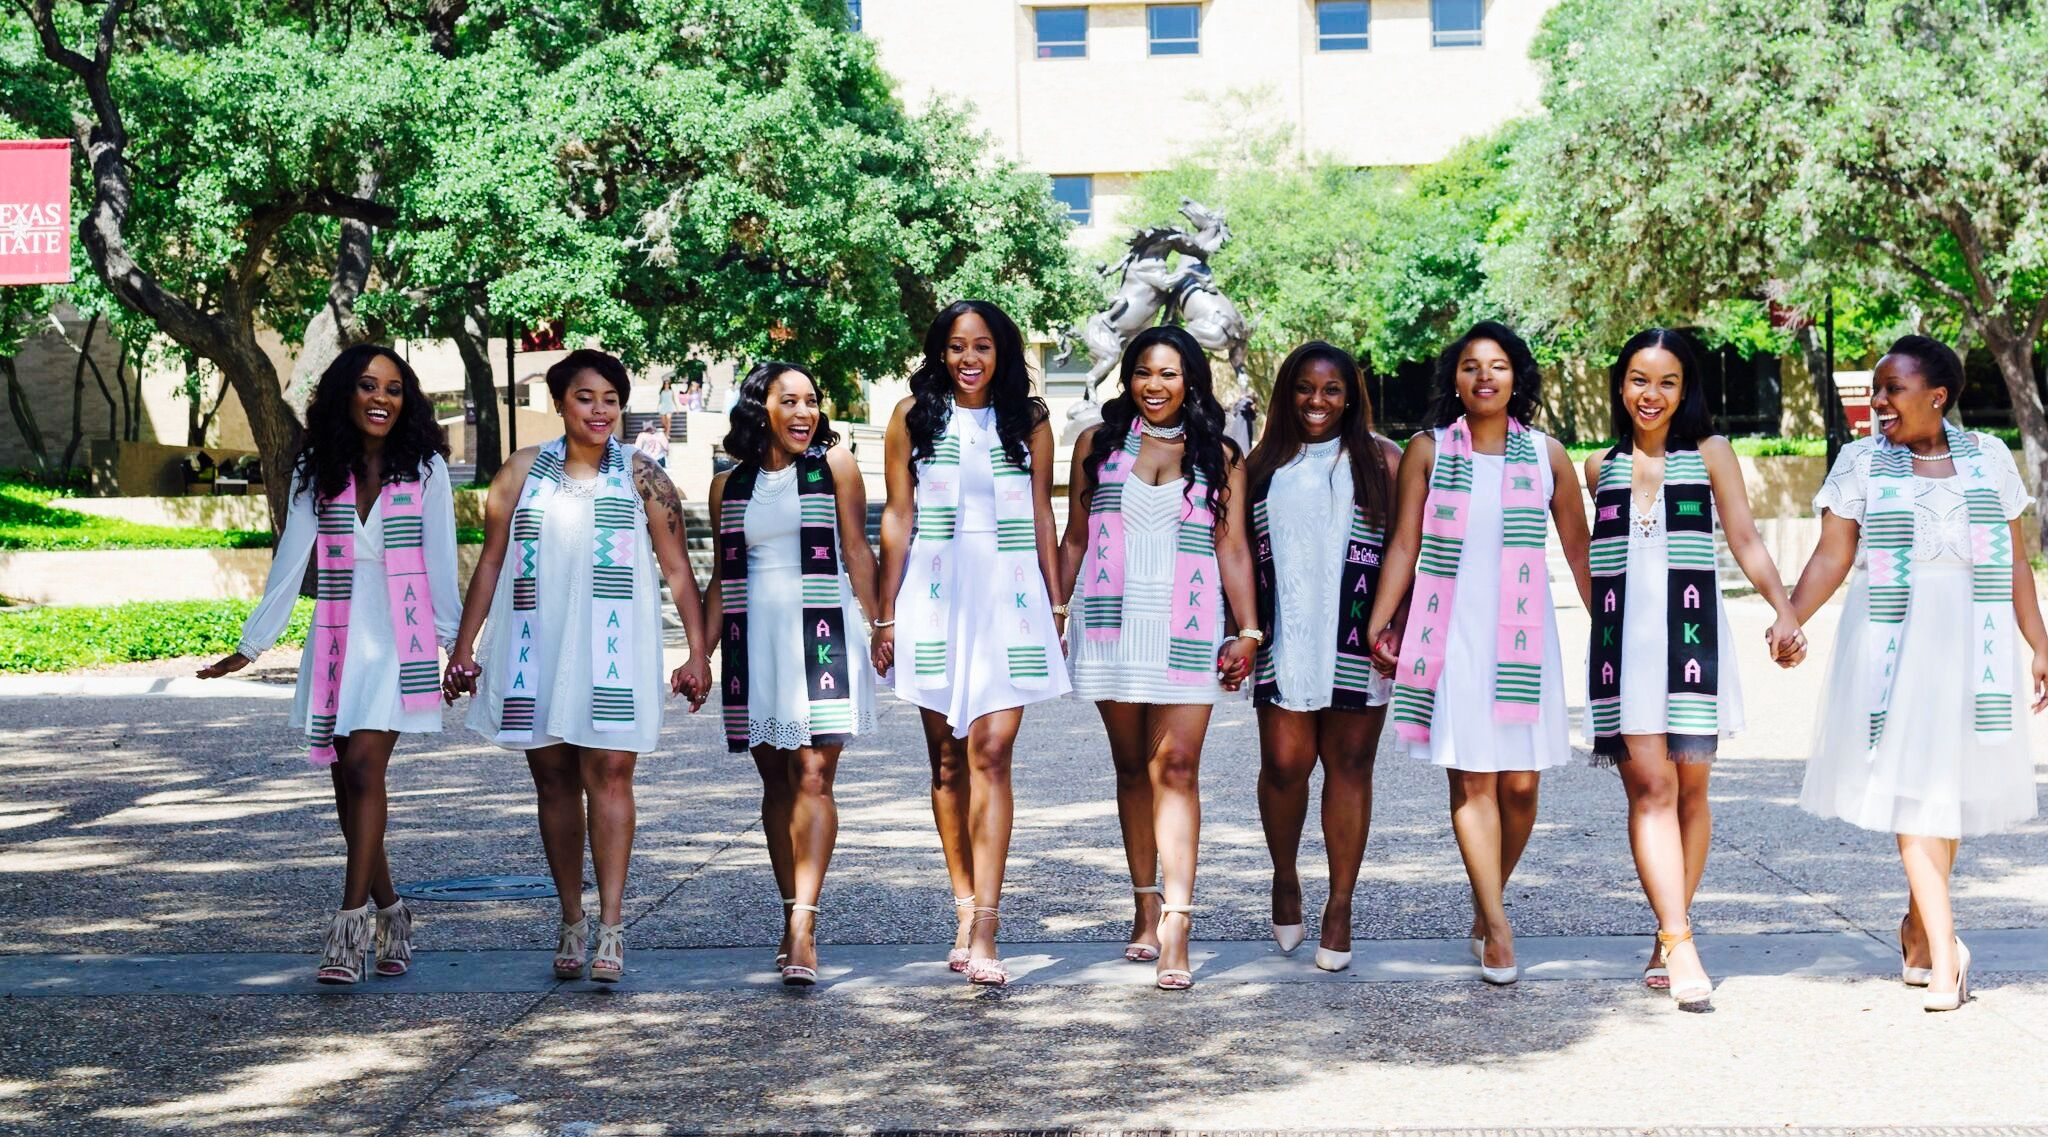 Texas State University  Alpha Kappa Alpha Sorority Incorporated Graduates Group Picture Ideas #TXST #Graduates #Graduation #GroupPictureIdeas #AlphaKappaAlpha #Sorority #BlackGirlsRock #SuccessfulWomen #PrettyinPink #Happy #Laughing #GradPics